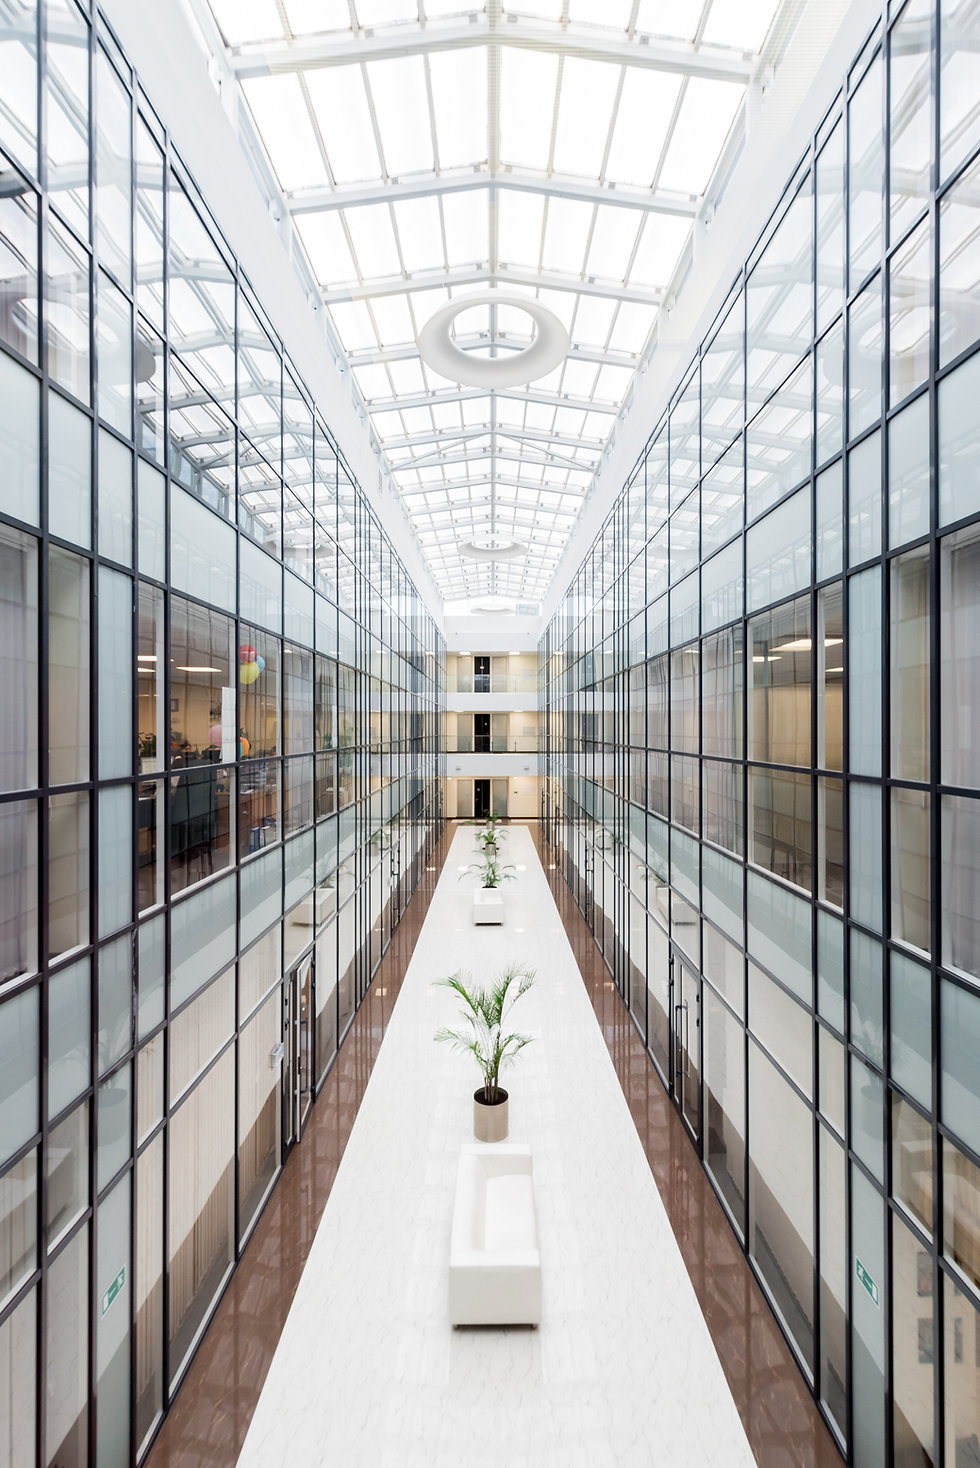 inside of a business building with glass panes for walls